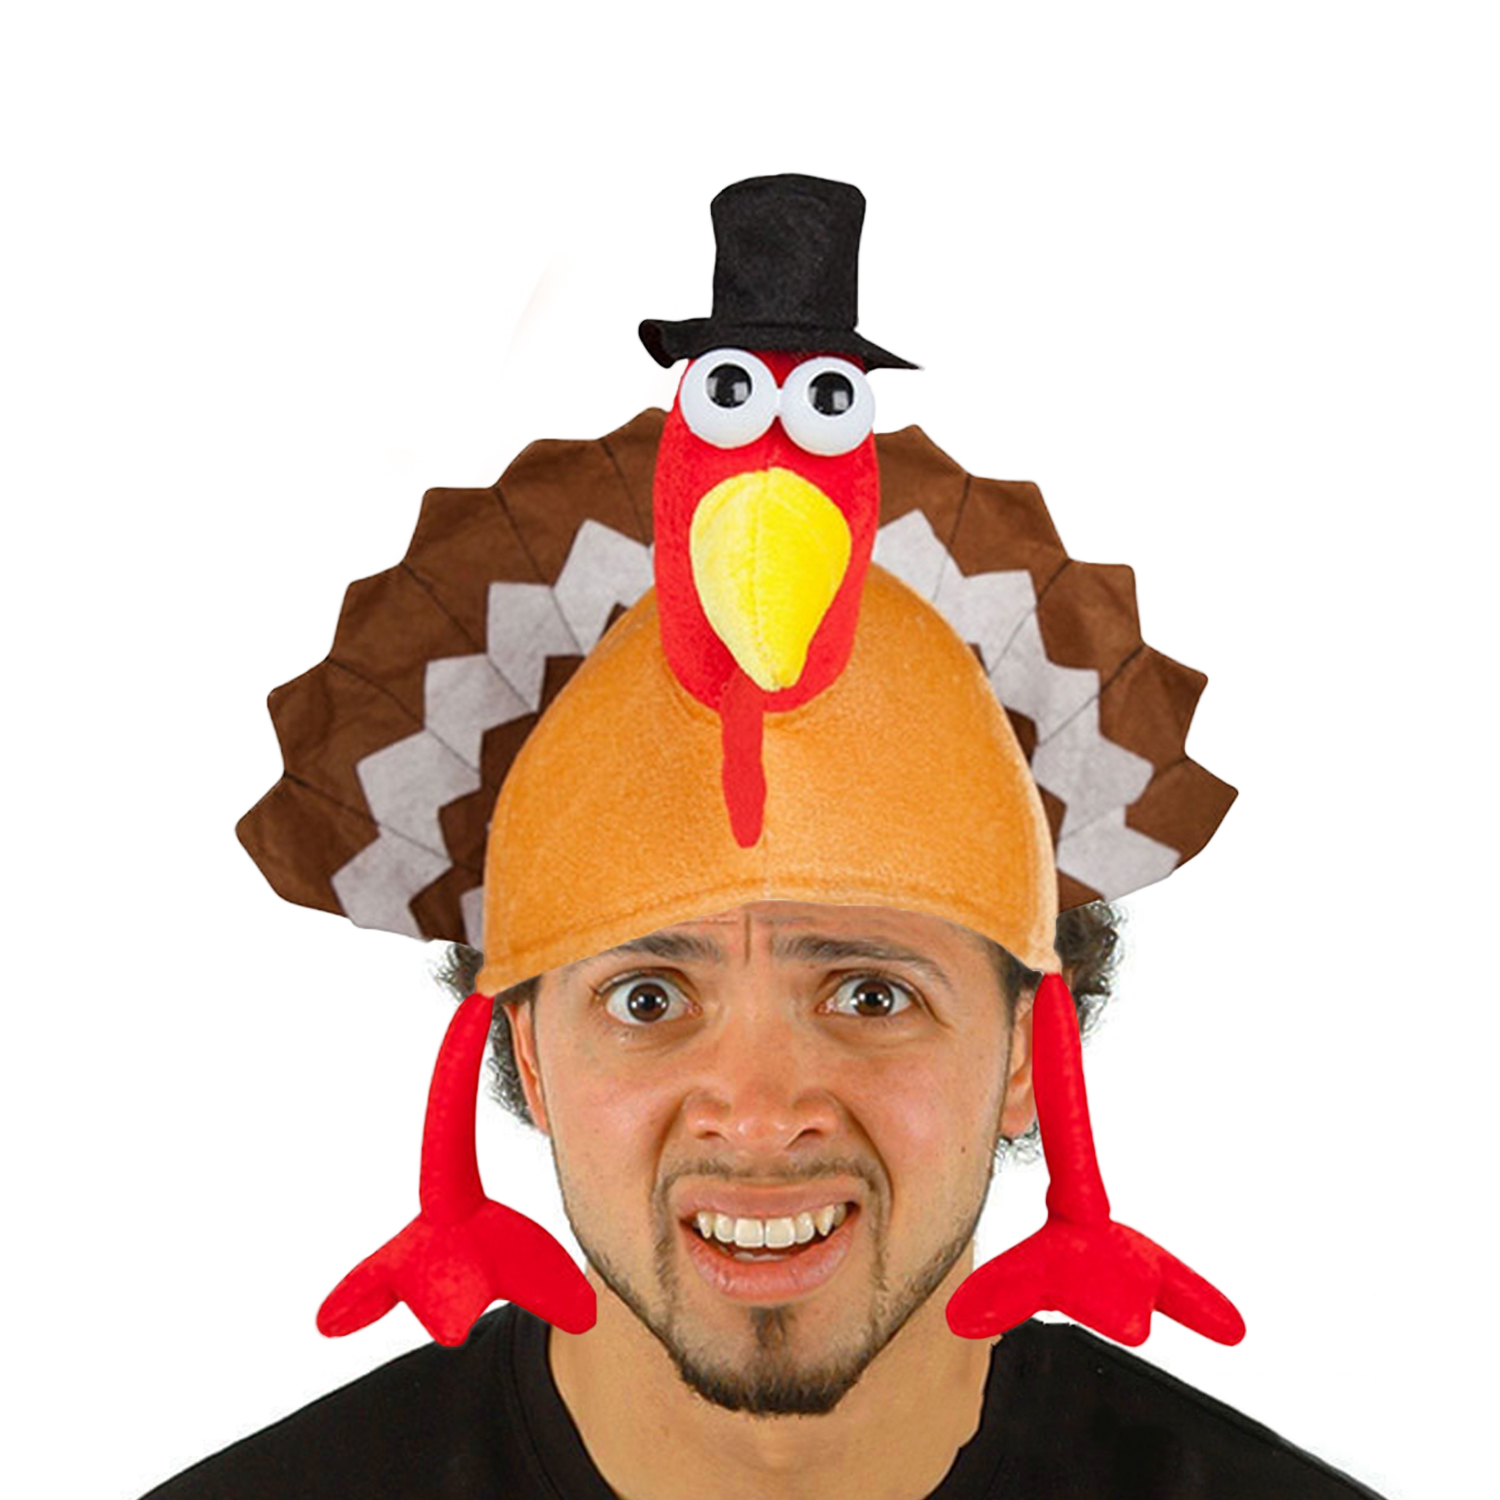 Funny Soft Plush Turkey Hat For Adults Men Women Thanksgiving Masquerade Festival Celebrations Party Costume Accessories